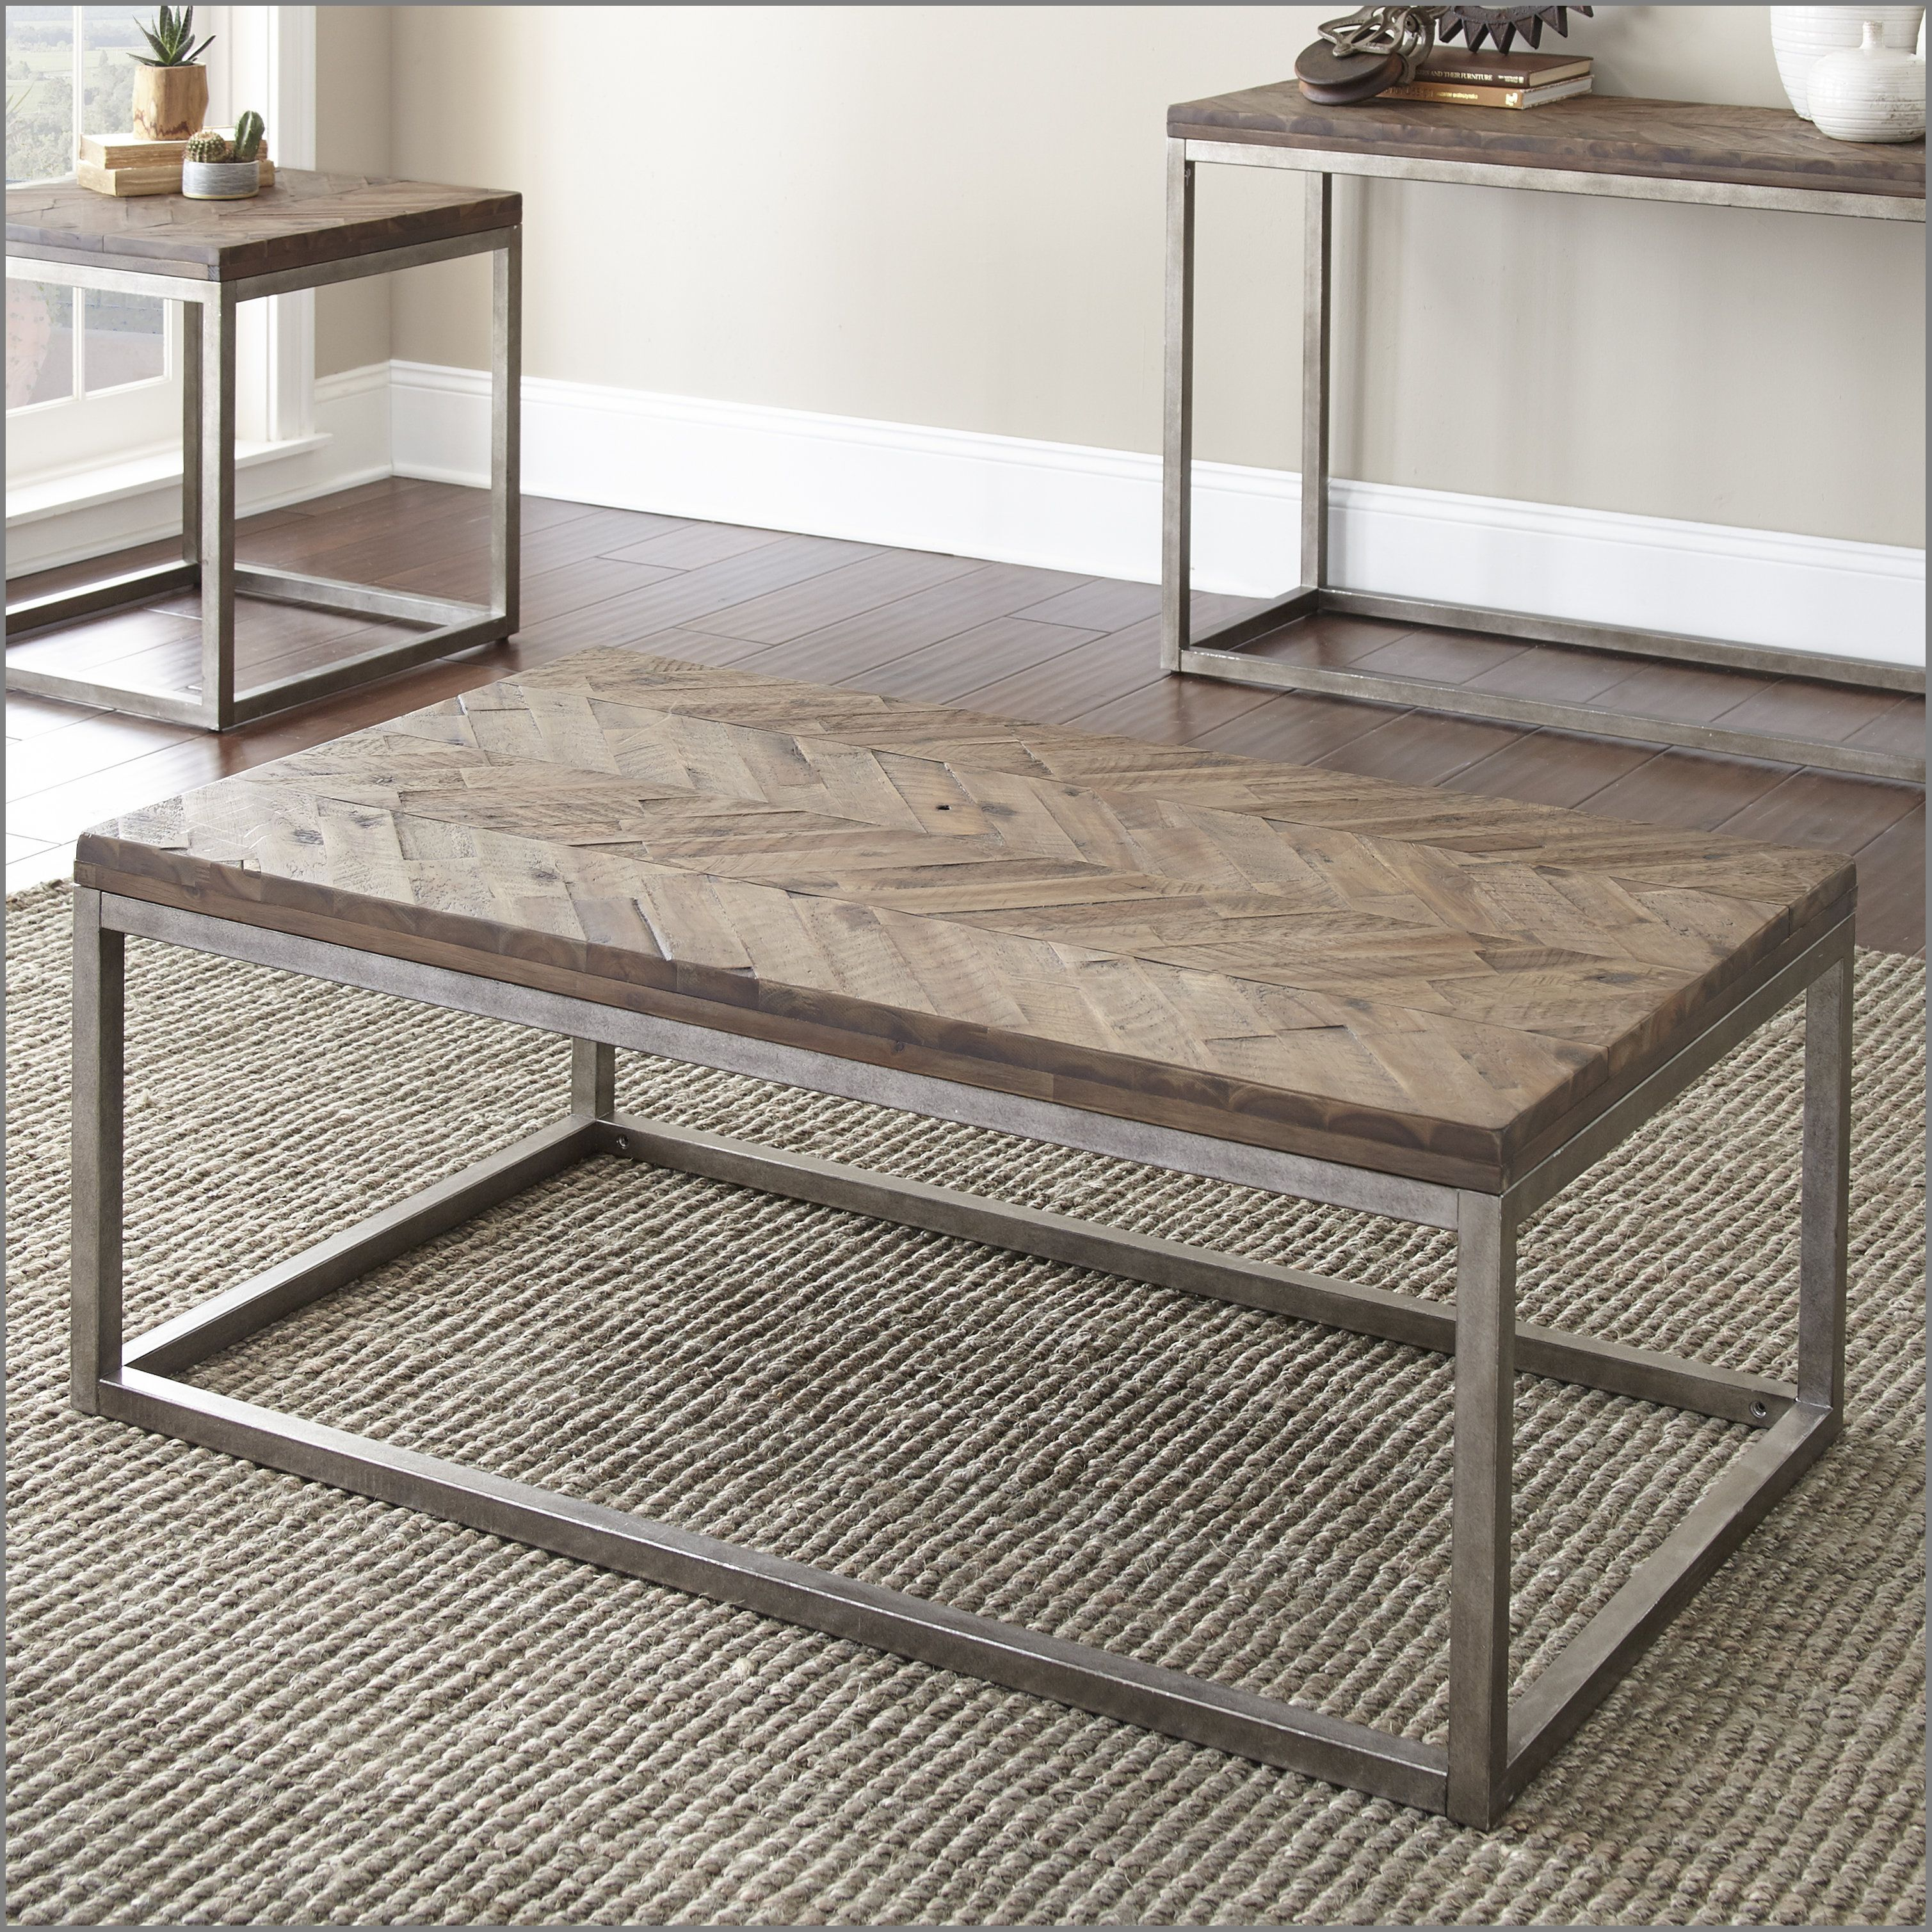 modern cooper rectangle coffee table tables accent charming laurel foundry farmhouse kenton reviews round rug ashley chairs mission style plans adjustable lamp west elm collection